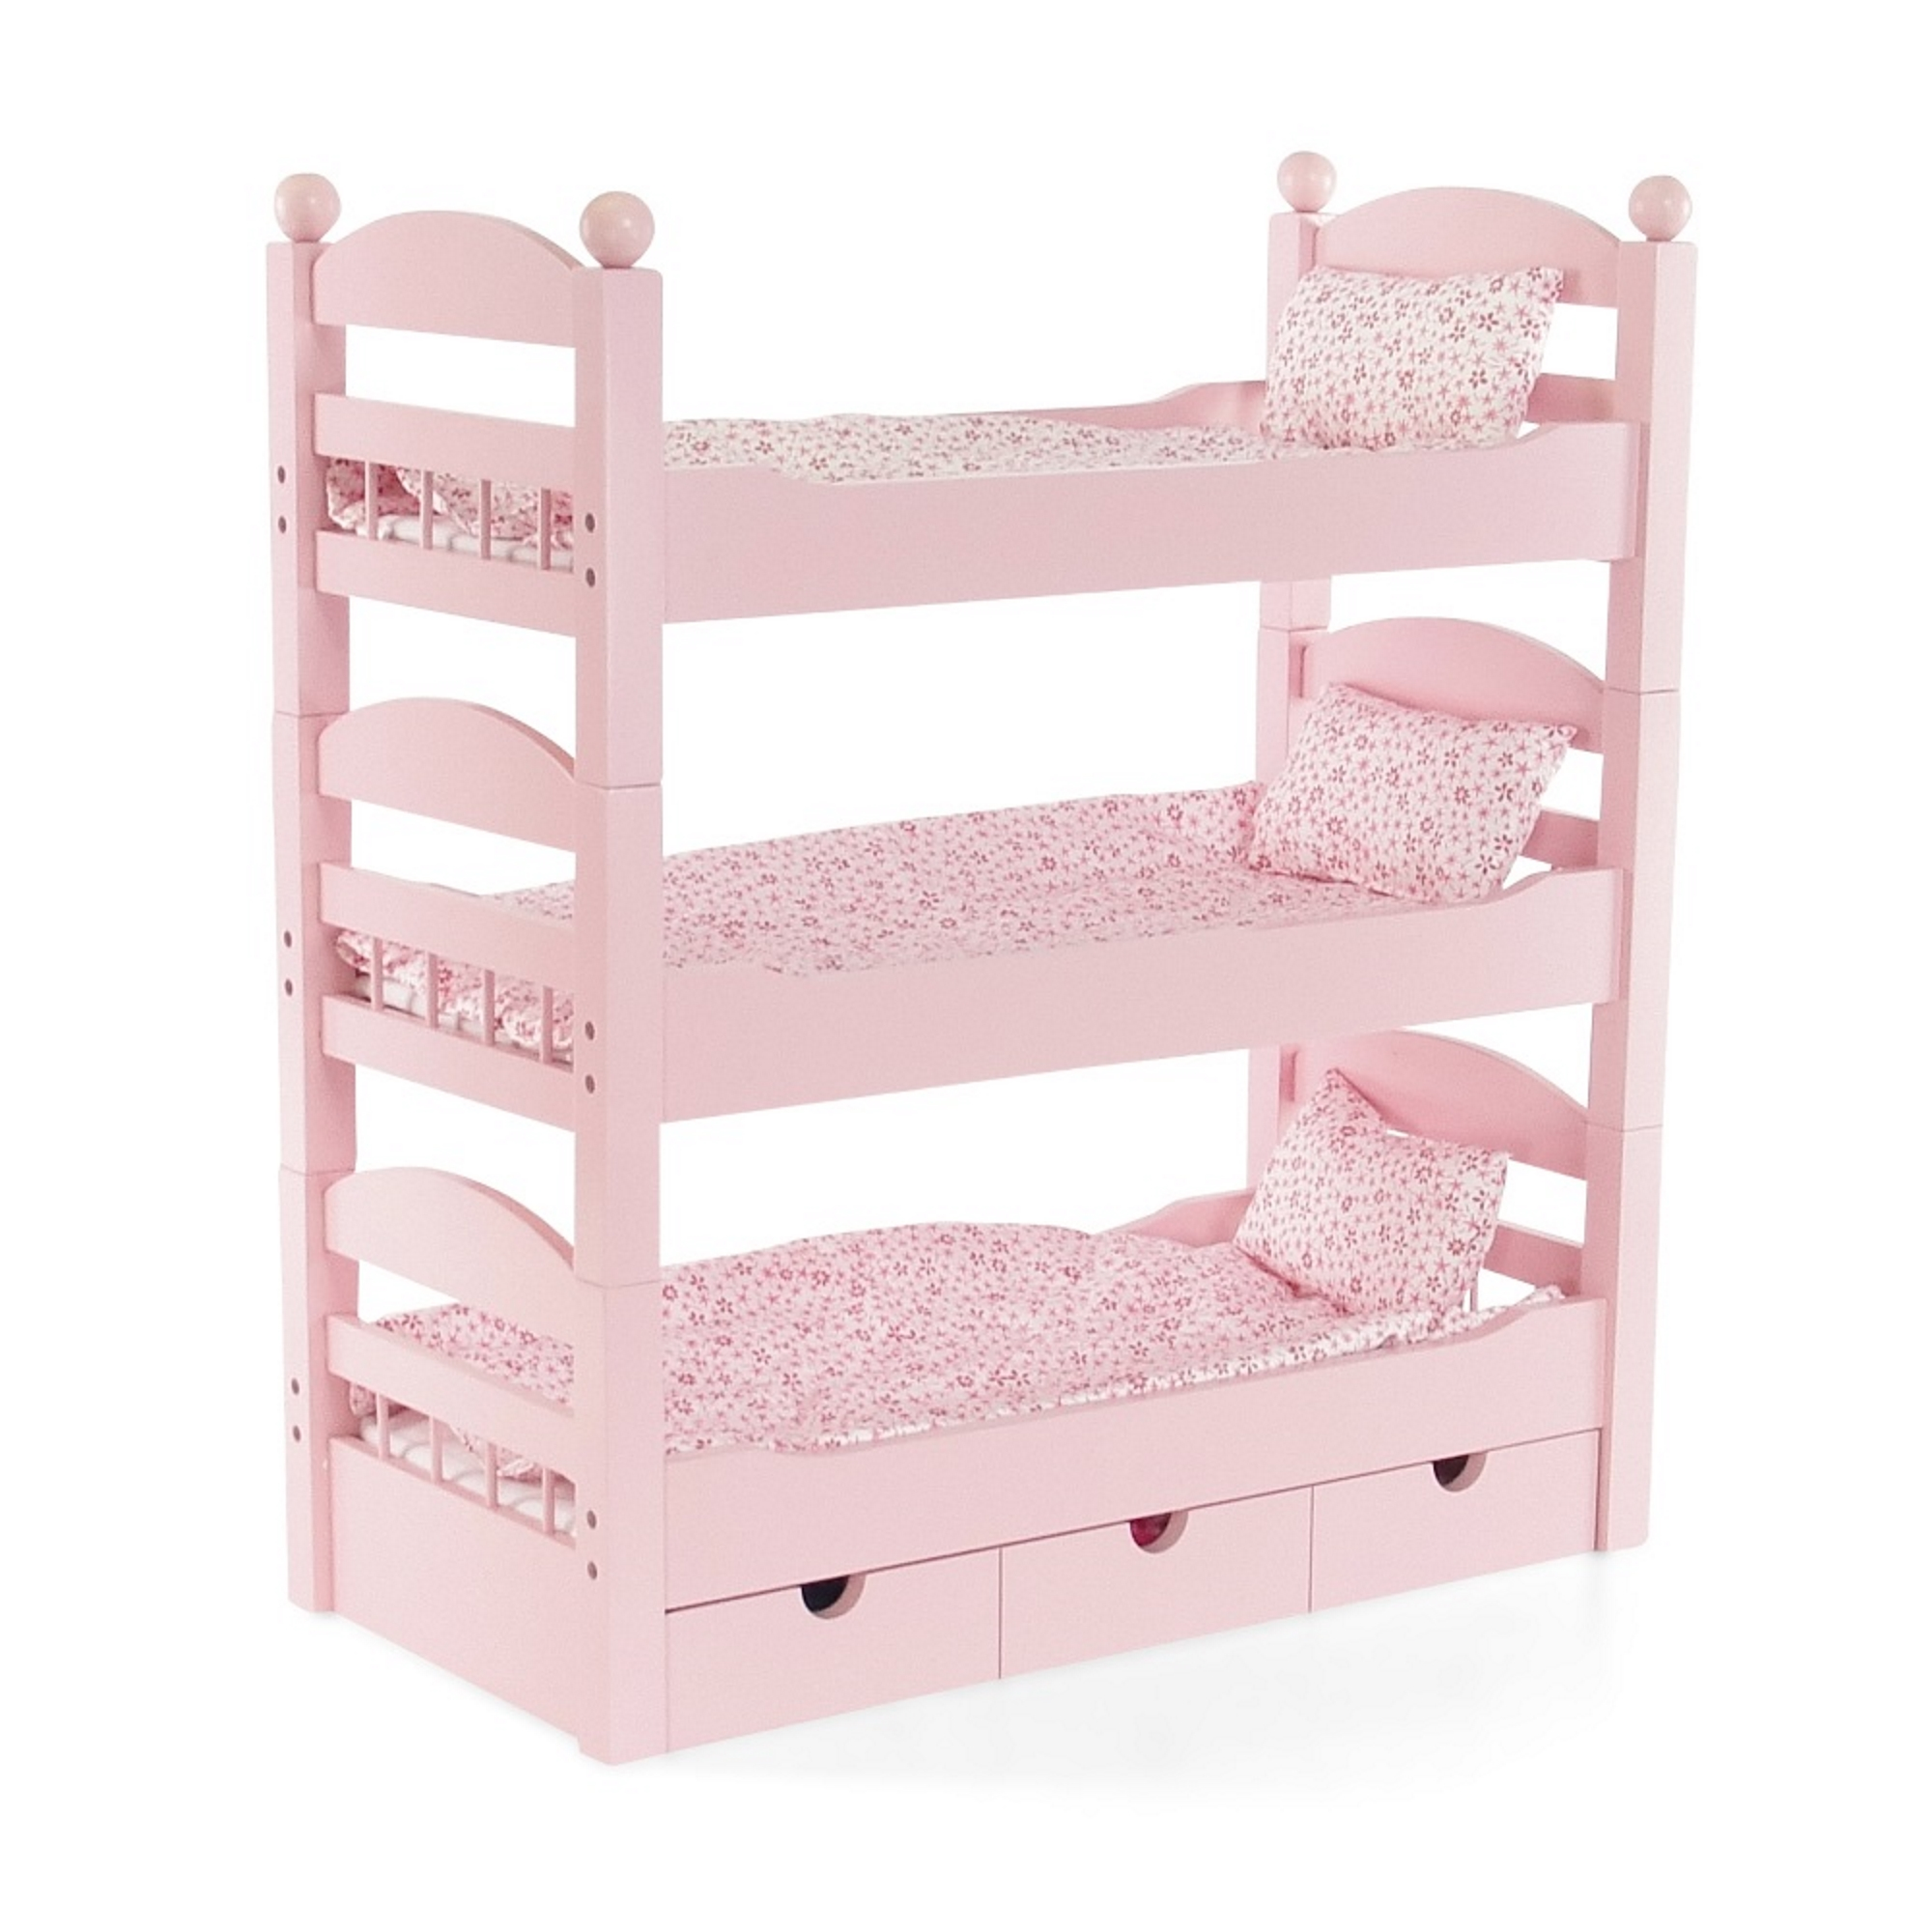 "18 Inch Doll Triple Bunk Bed - 3 Single Stackable Beds in One!  Wooden Furniture Made to Fit American Girl or Other 18"" Dolls"